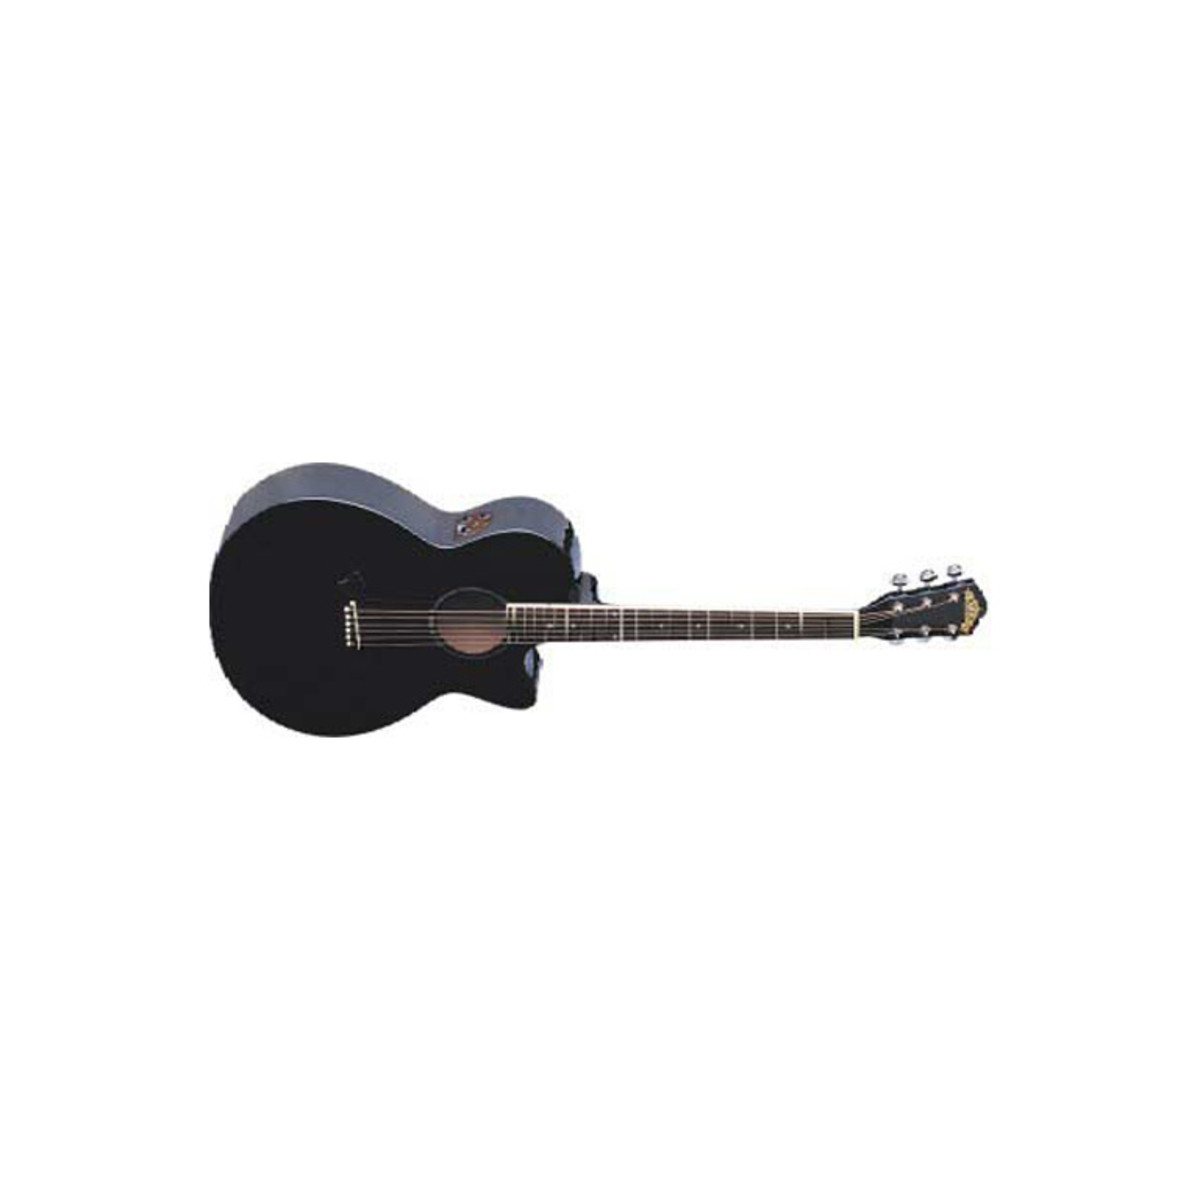 Washburn Ea16 Electro Acoustic Black At Gear4music